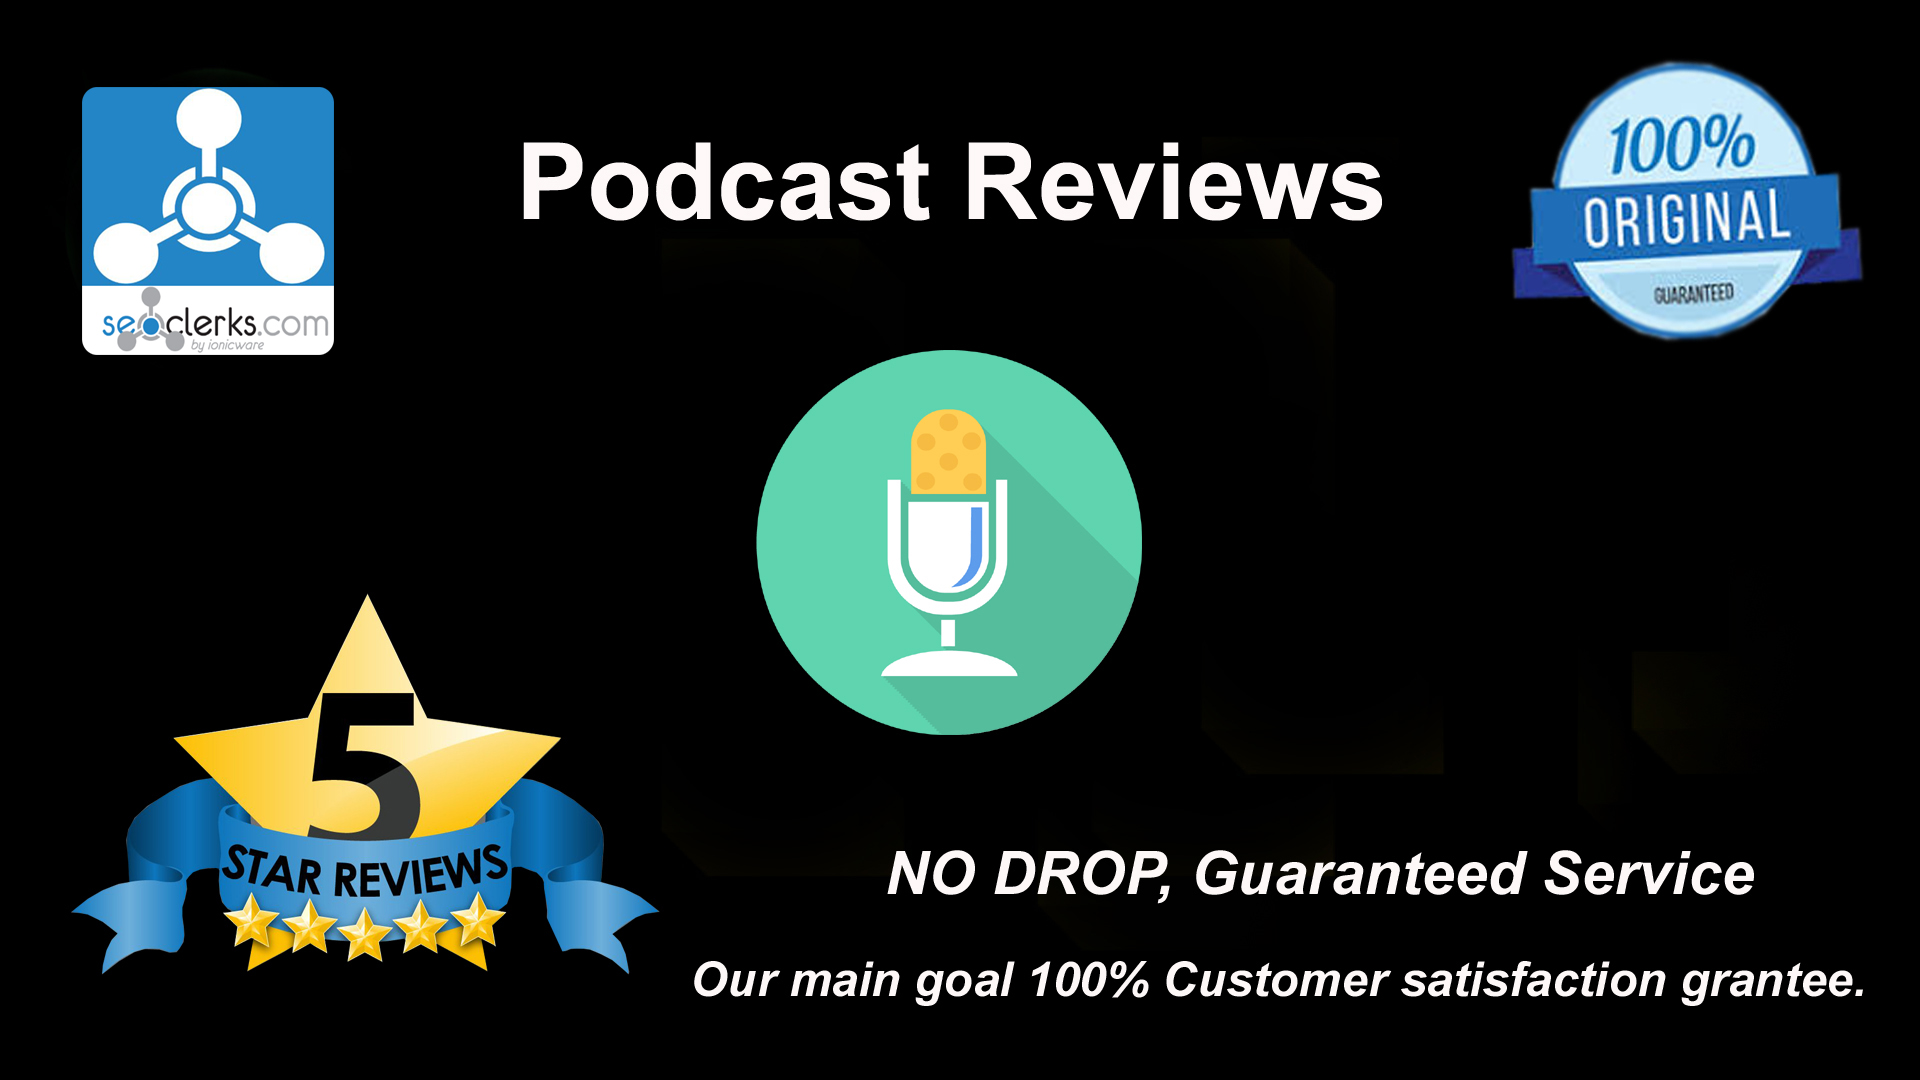 I will popular your podcast authentic feedback